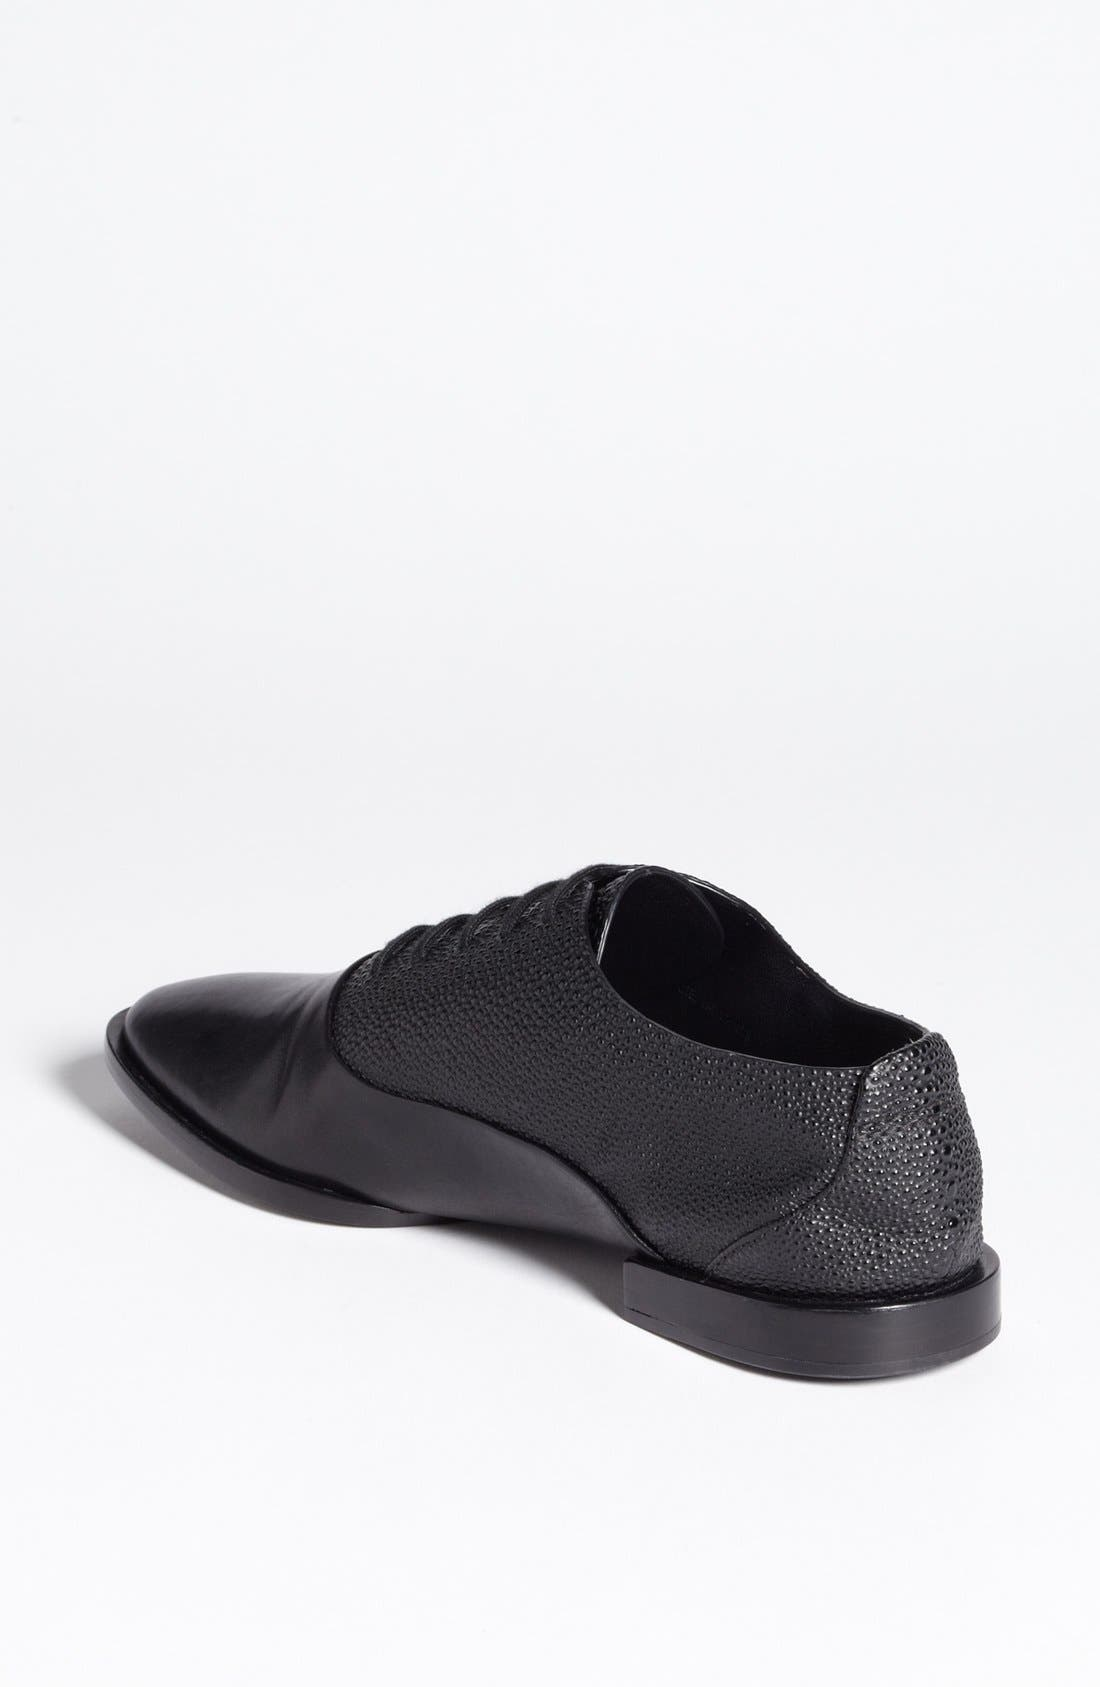 Alternate Image 2  - Alexander Wang 'Ingrid' Oxford